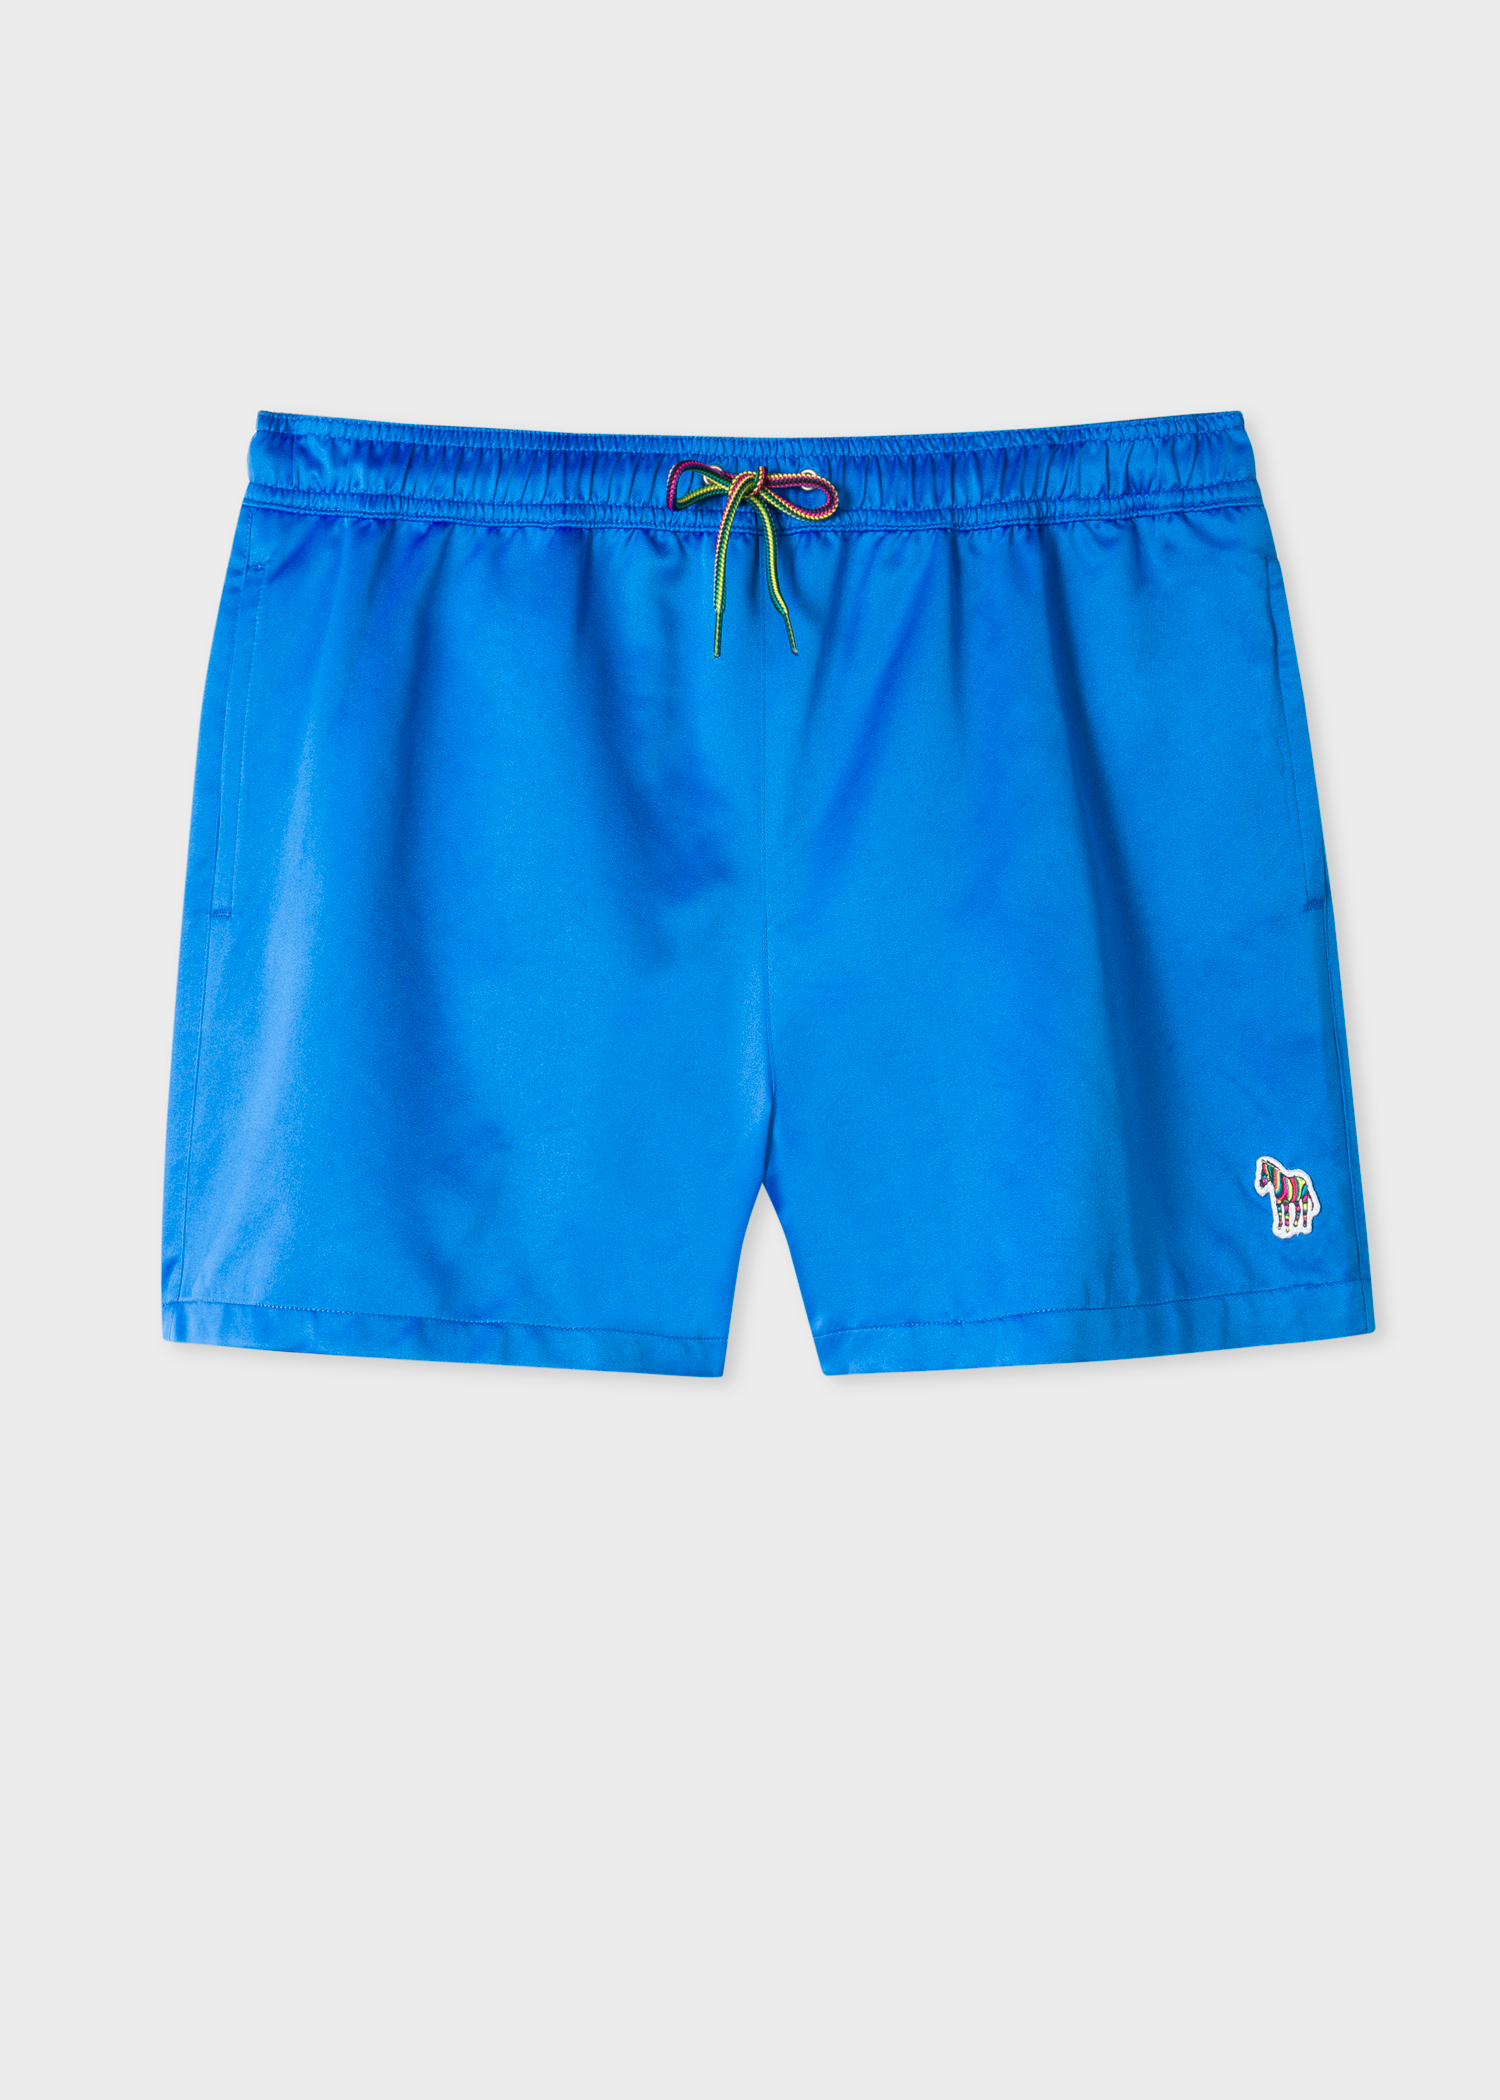 79185c5c4c Front view- Men's Blue Zebra Logo Swim Shorts by Paul Smith